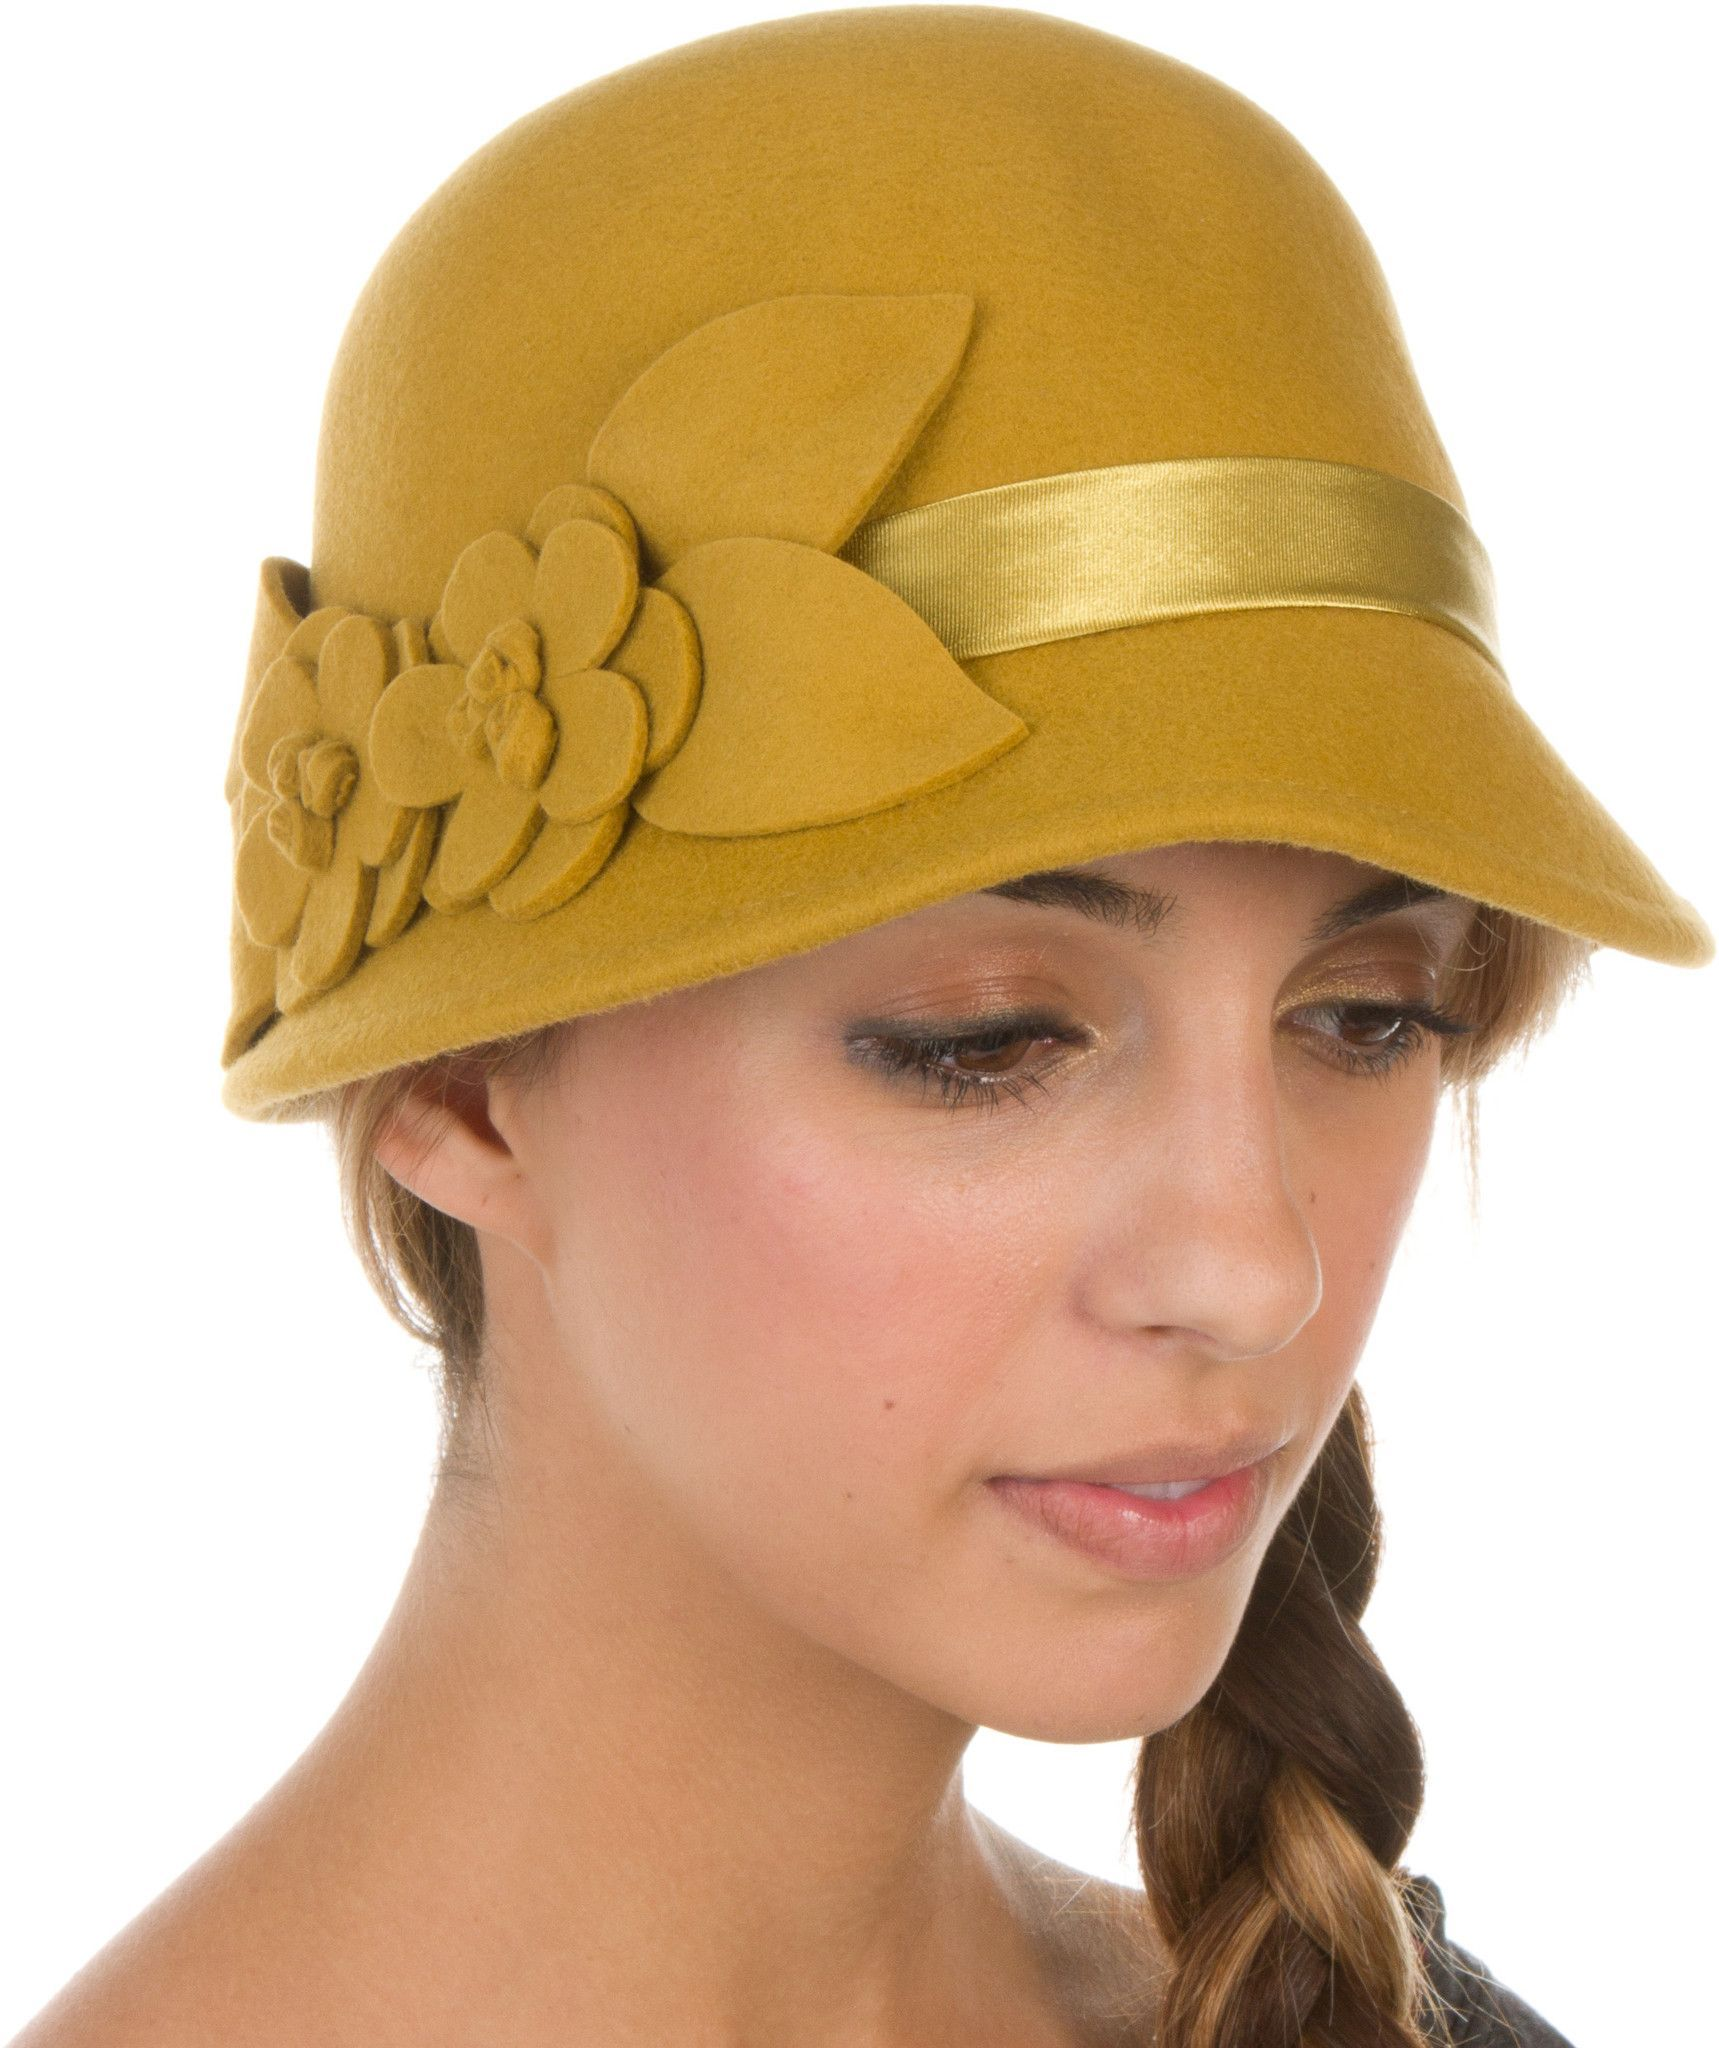 Sakkas Vivian Vintage Style 100% Wool Cloche Bell Hat with Flower Accent 26f2a68935c1